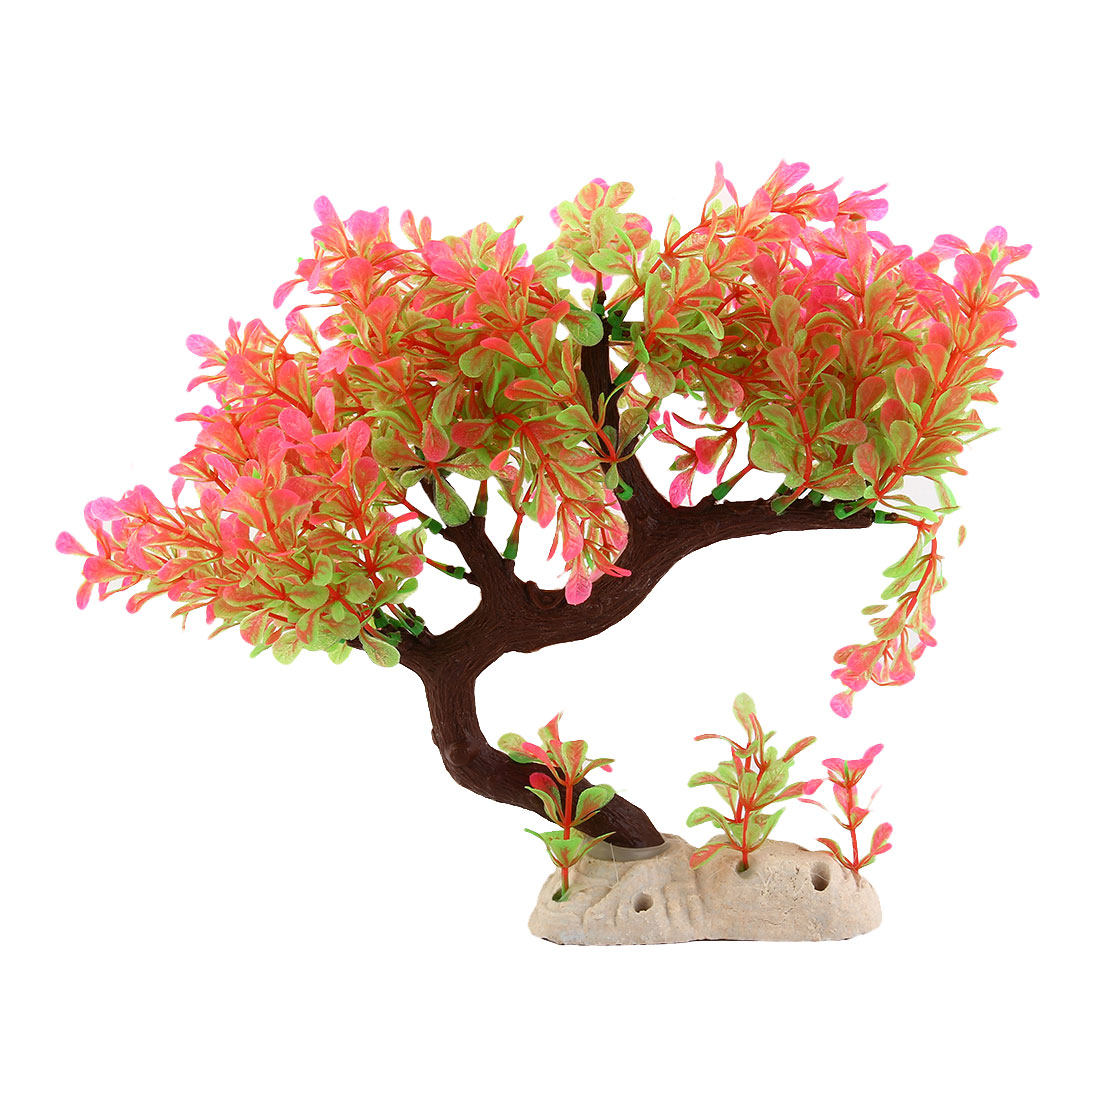 Fuchsia Green Leaves Bent Tree Trunk Plastic Plant for Fish Tank